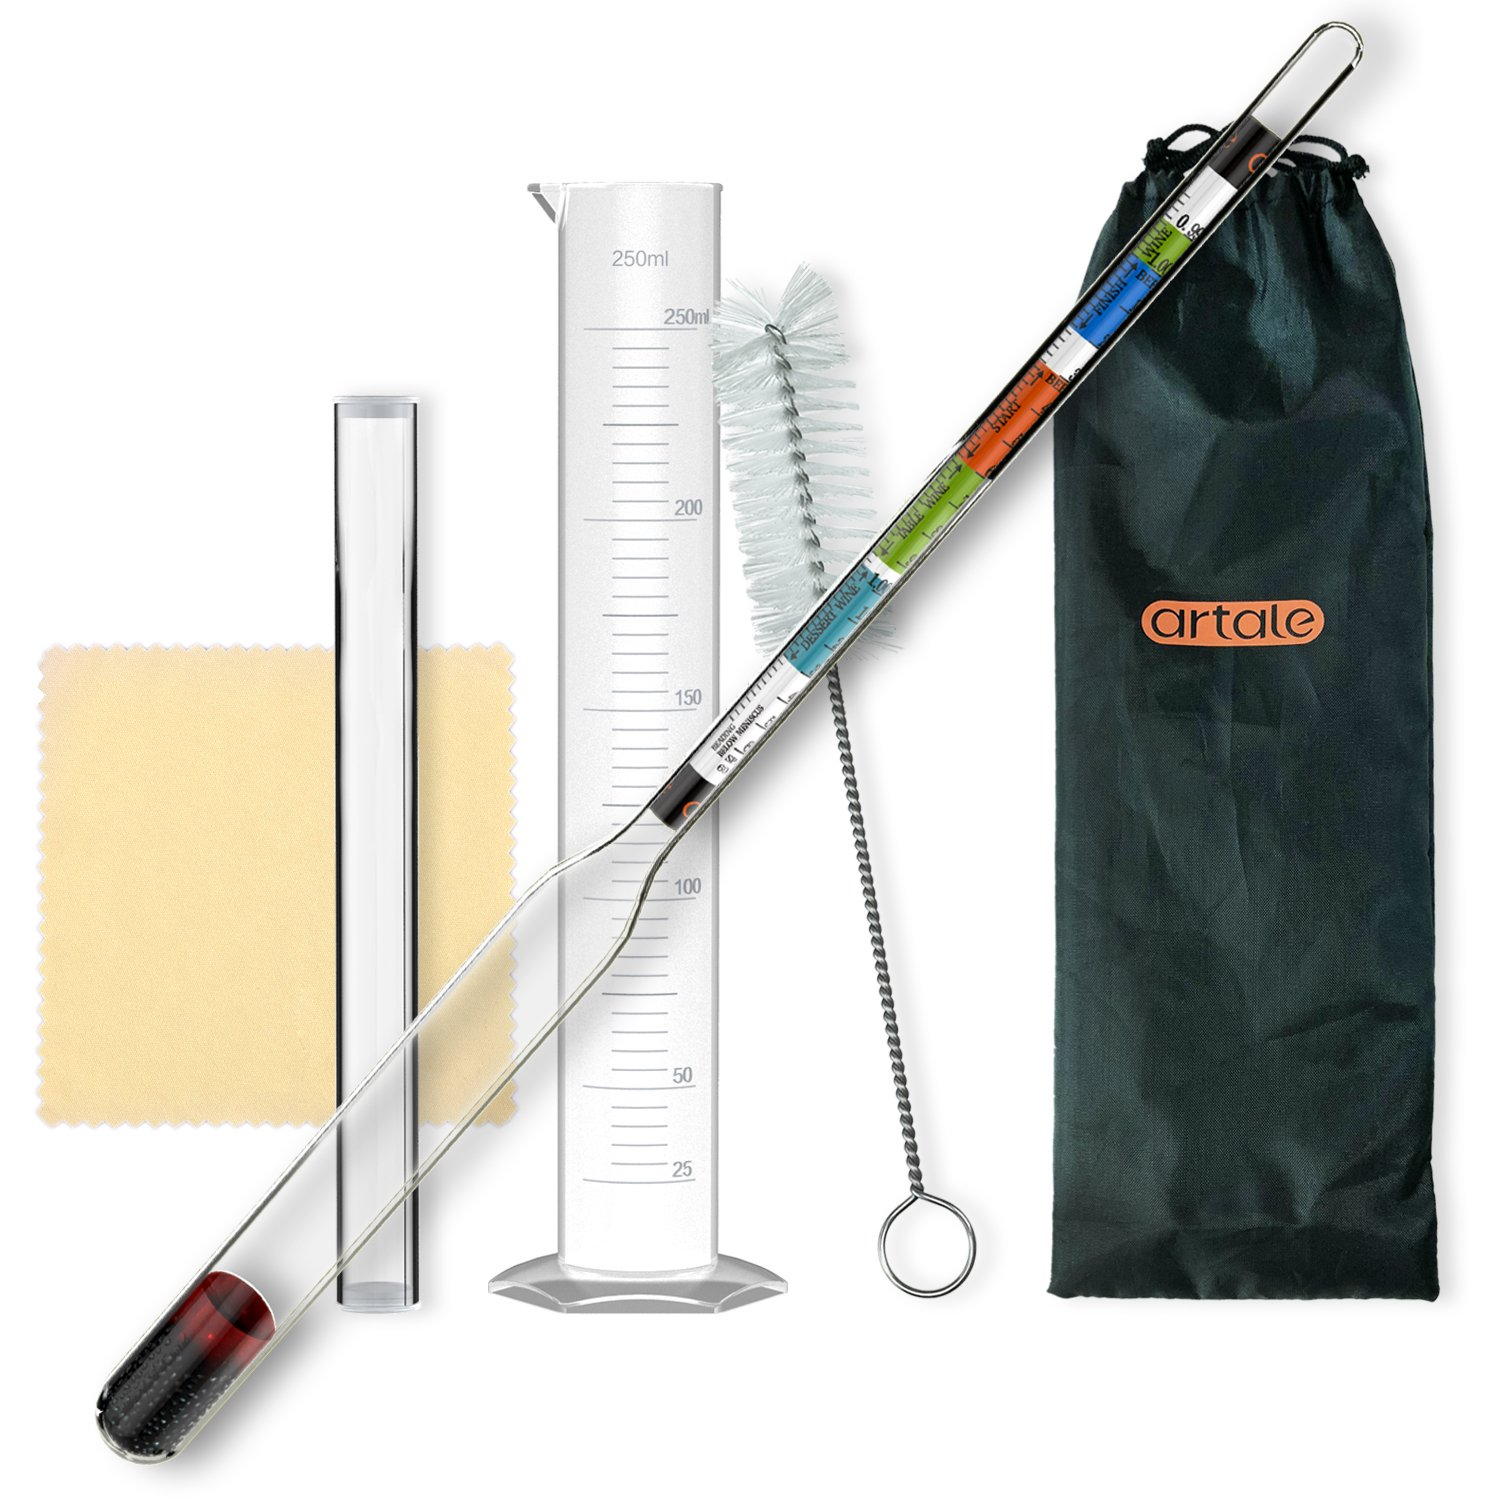 artale Triple Scale Alcohol Hydrometer Test Kit for Home Brew Beer, Wine, Mead, Cider with Specific Gravity Test Kit, 250ml Plastic Test Jar, Cleaning Brush/Cloth/Storage Bag - ABV, Brix and Gravity